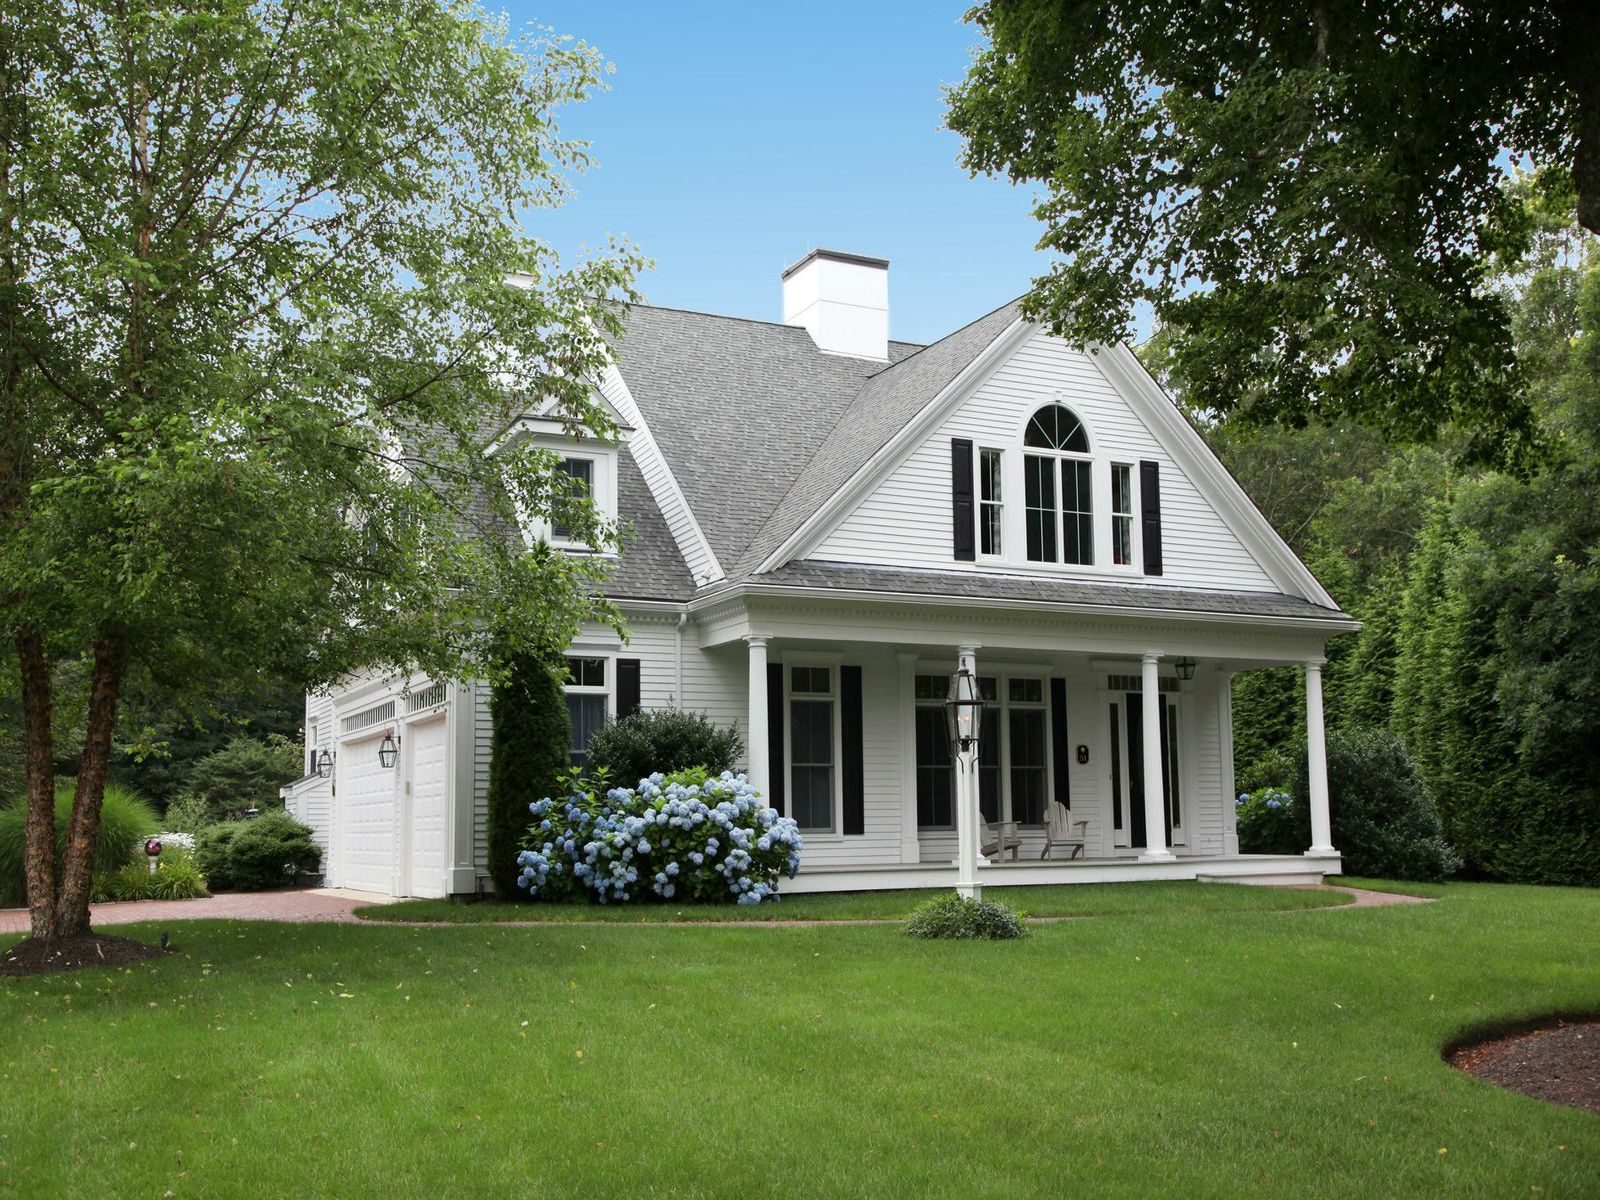 Village Dream, Centerville MA Single Family Home - Cape Cod Real Estate